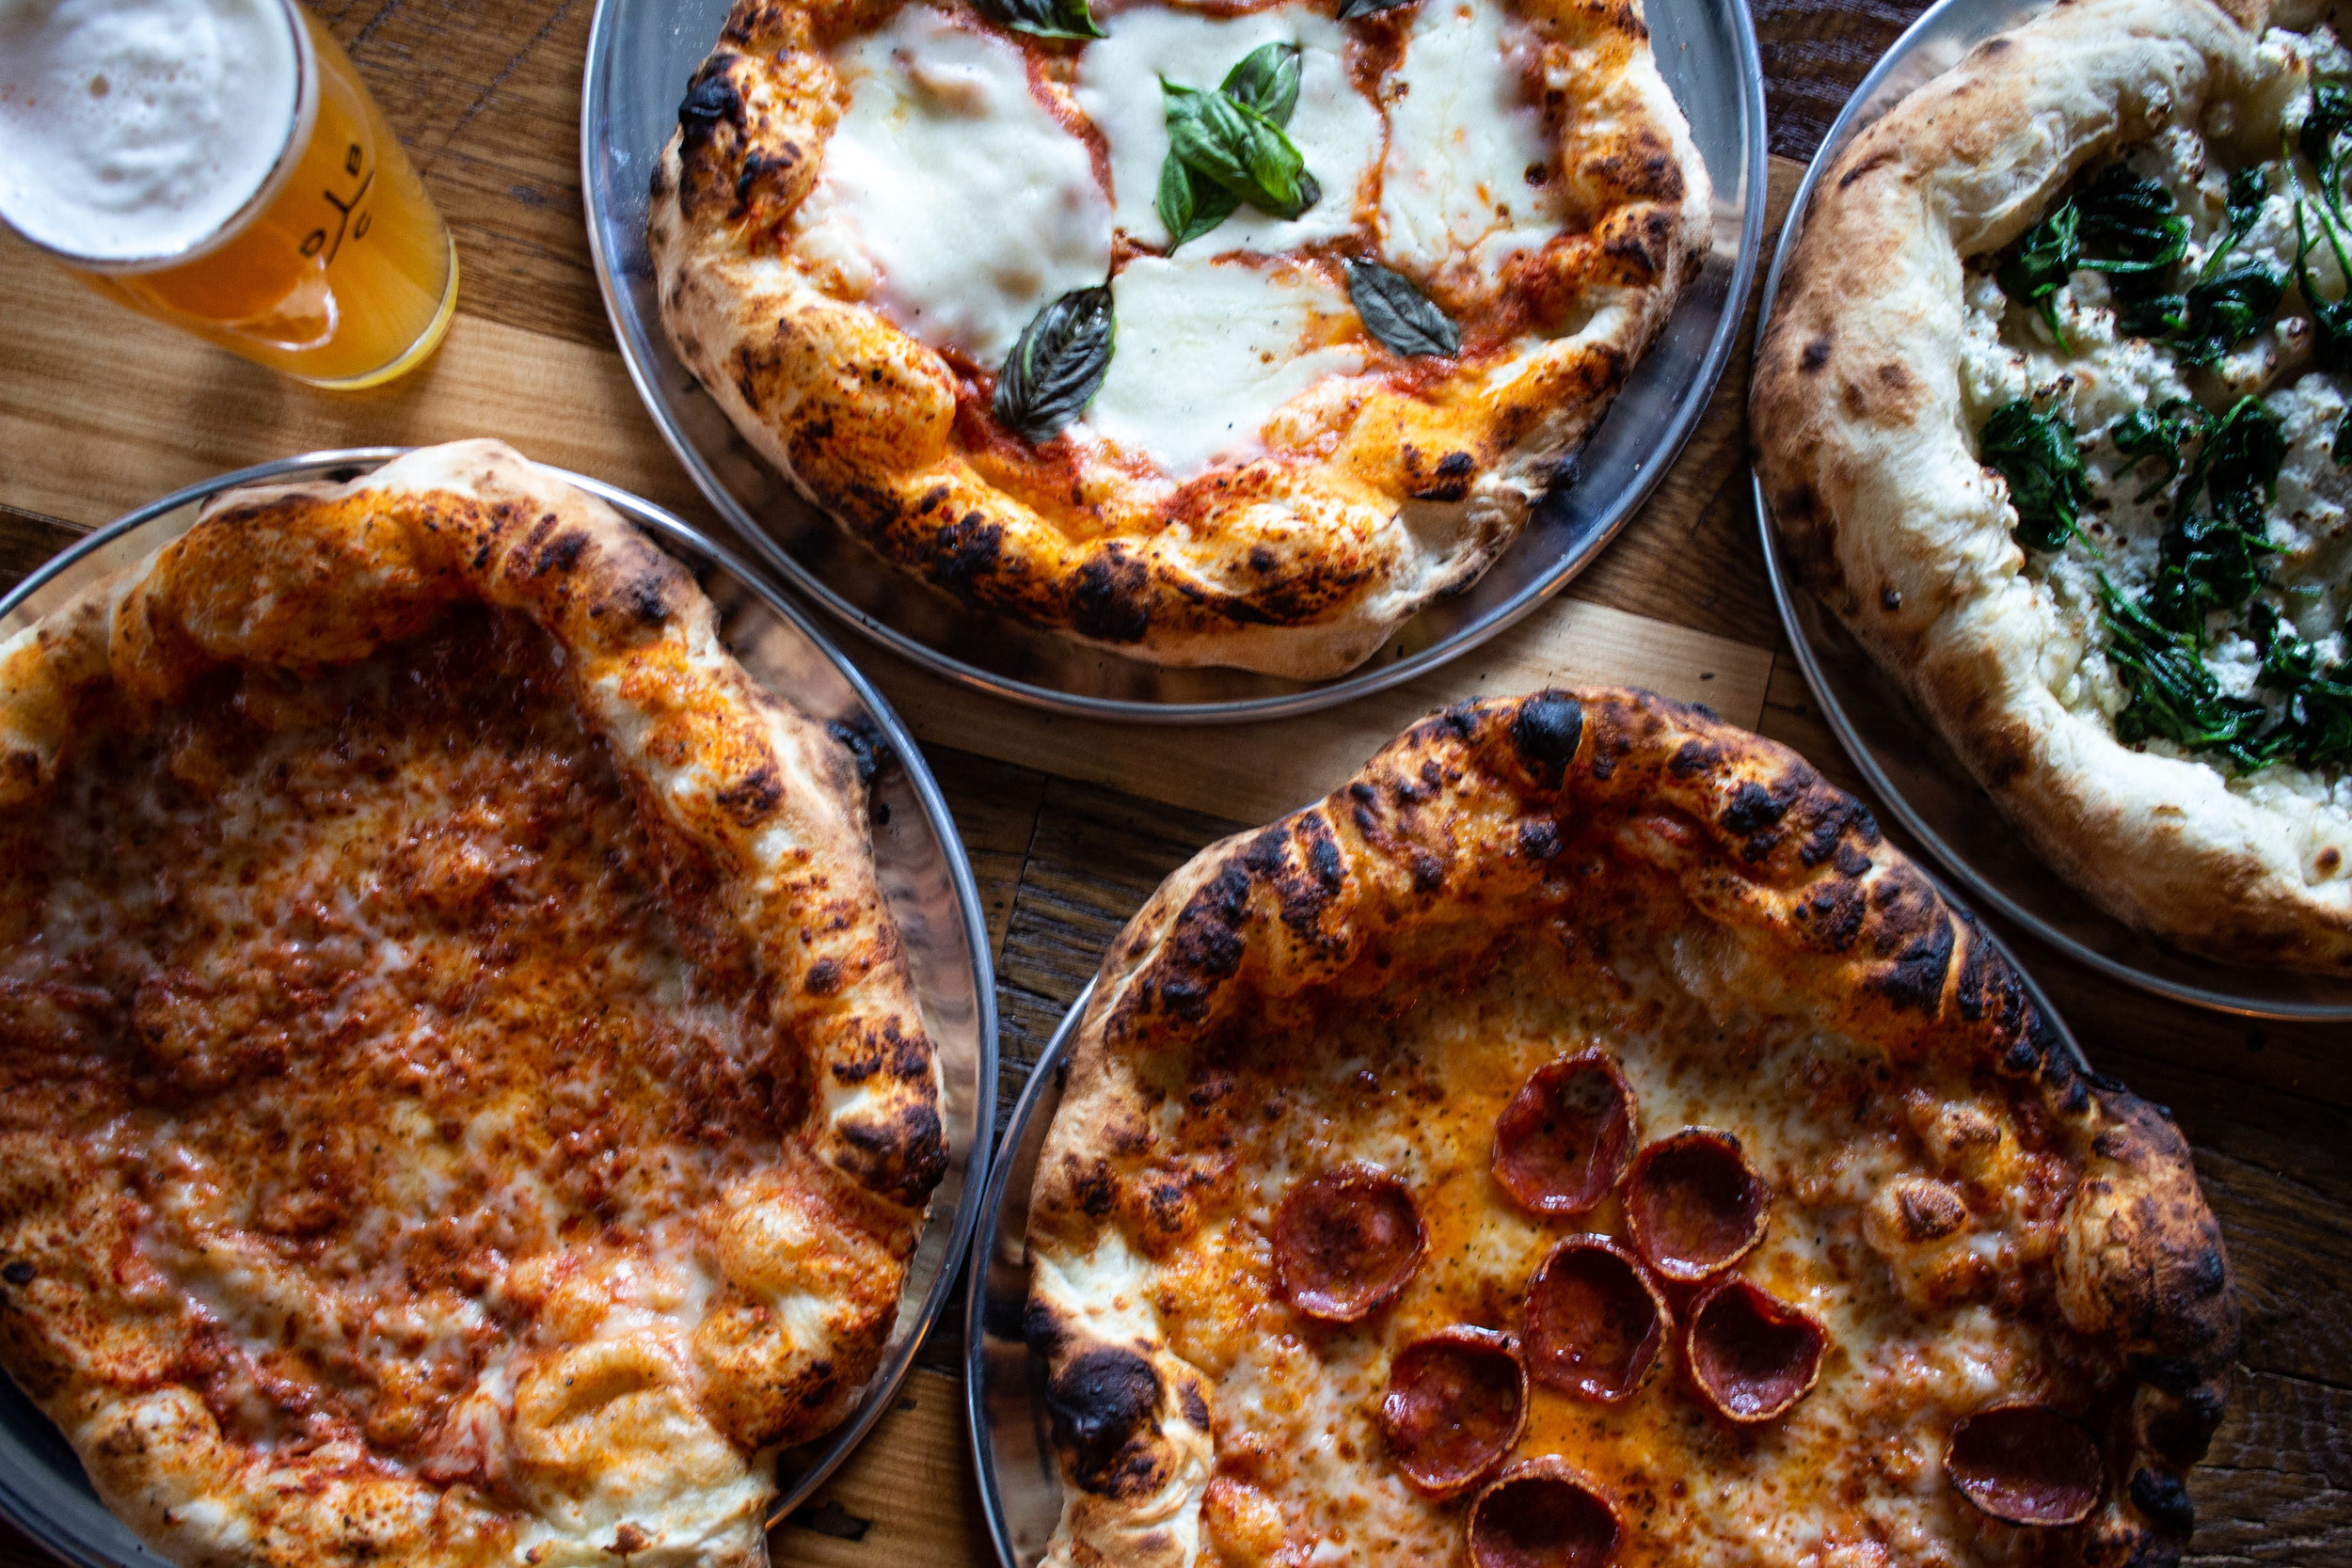 Pizza Photoshoot - 2019 03 07 (37 of 48).jpg